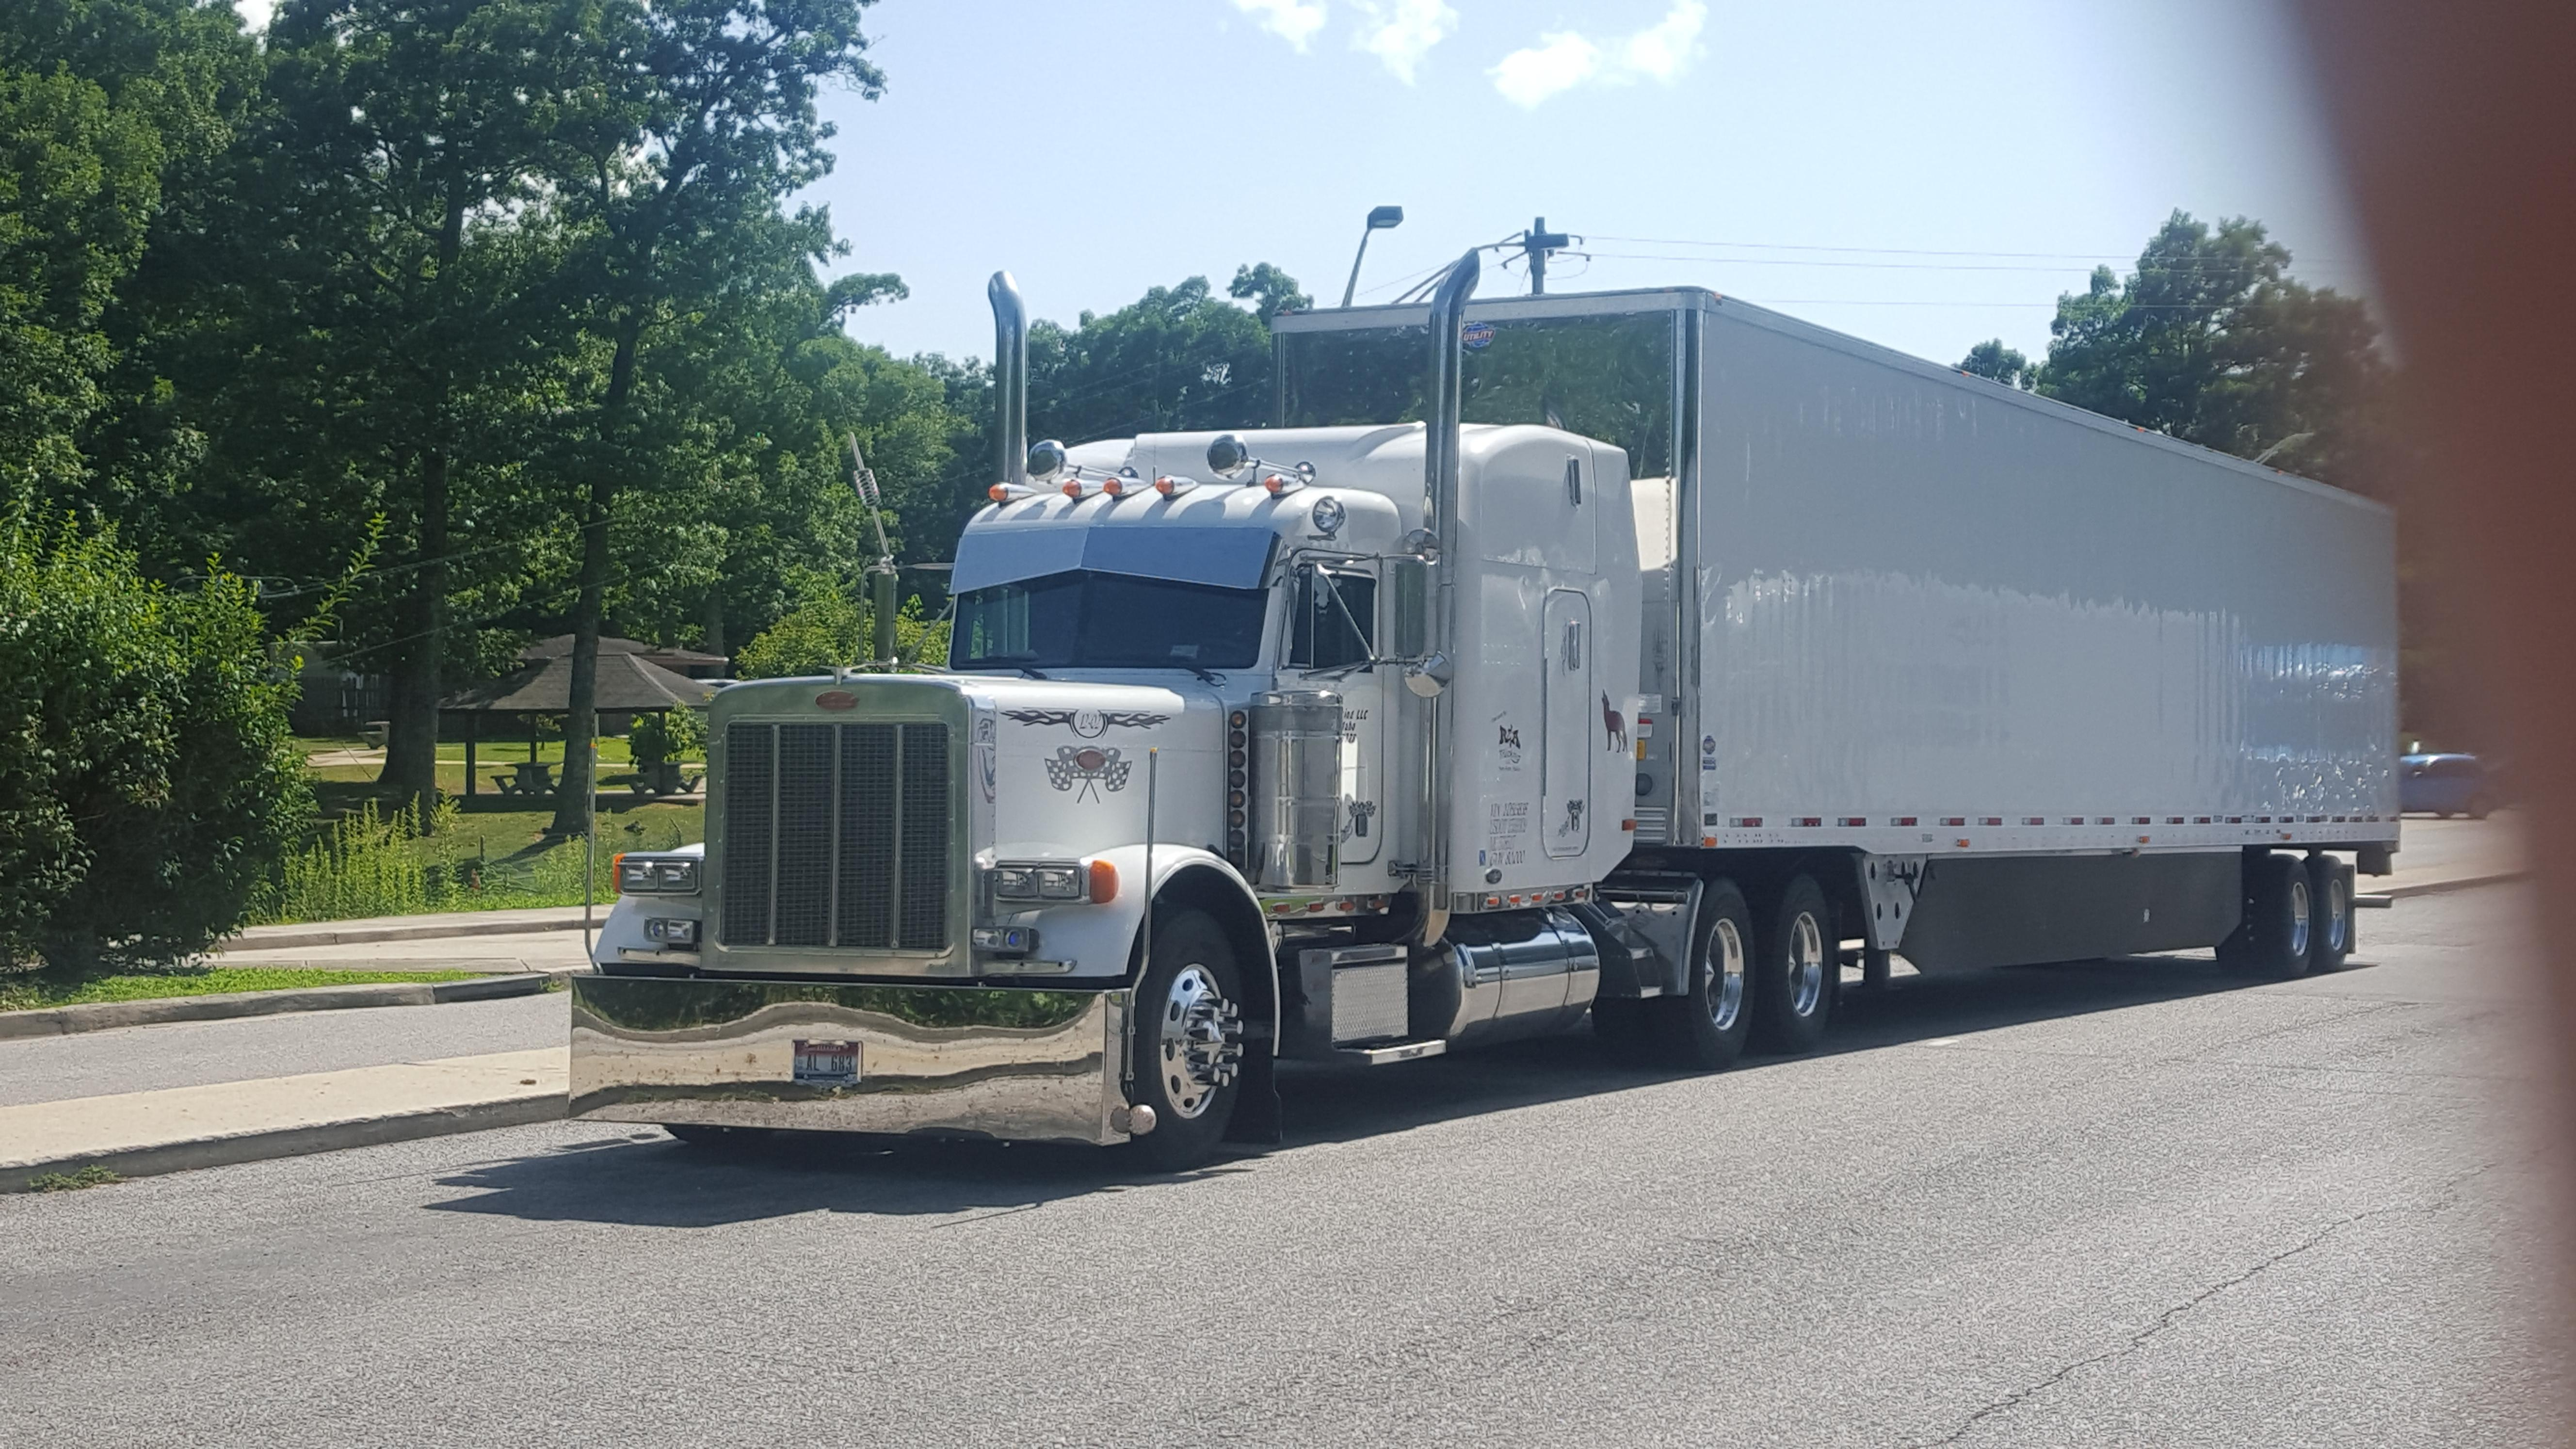 Jerry's big rig, first picture.